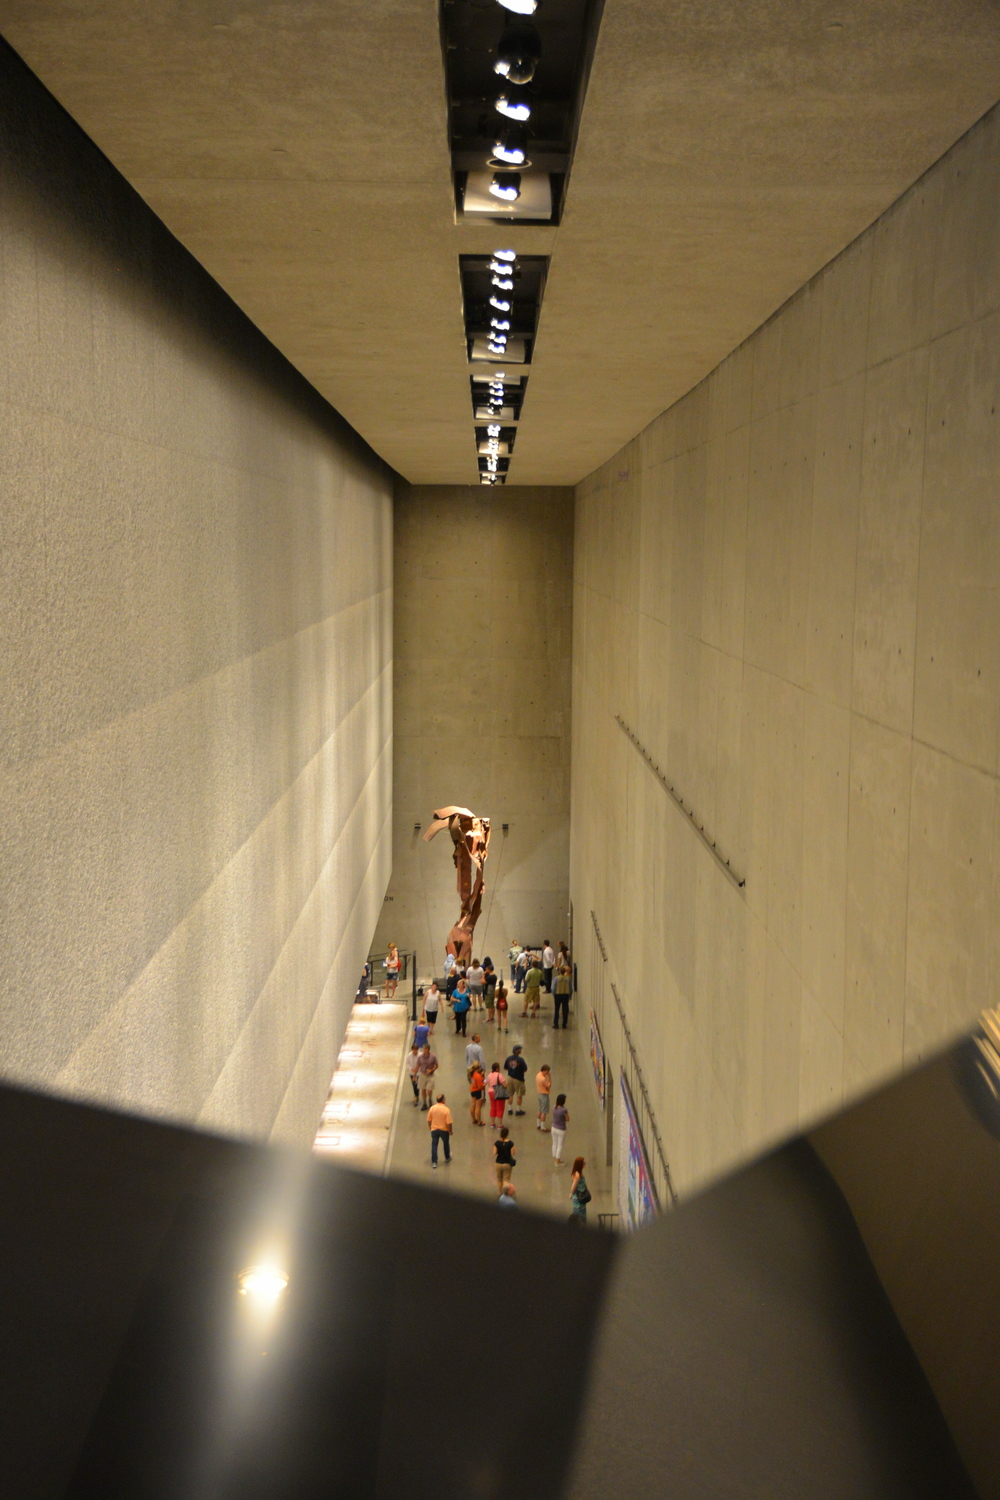 Looking down to the bottom floor of the museum. The wall to the left represents where the South Tower once stood. The mangled structure at the end of the hallway is the steel facade just below the point where Flight 11 struck the North Tower.